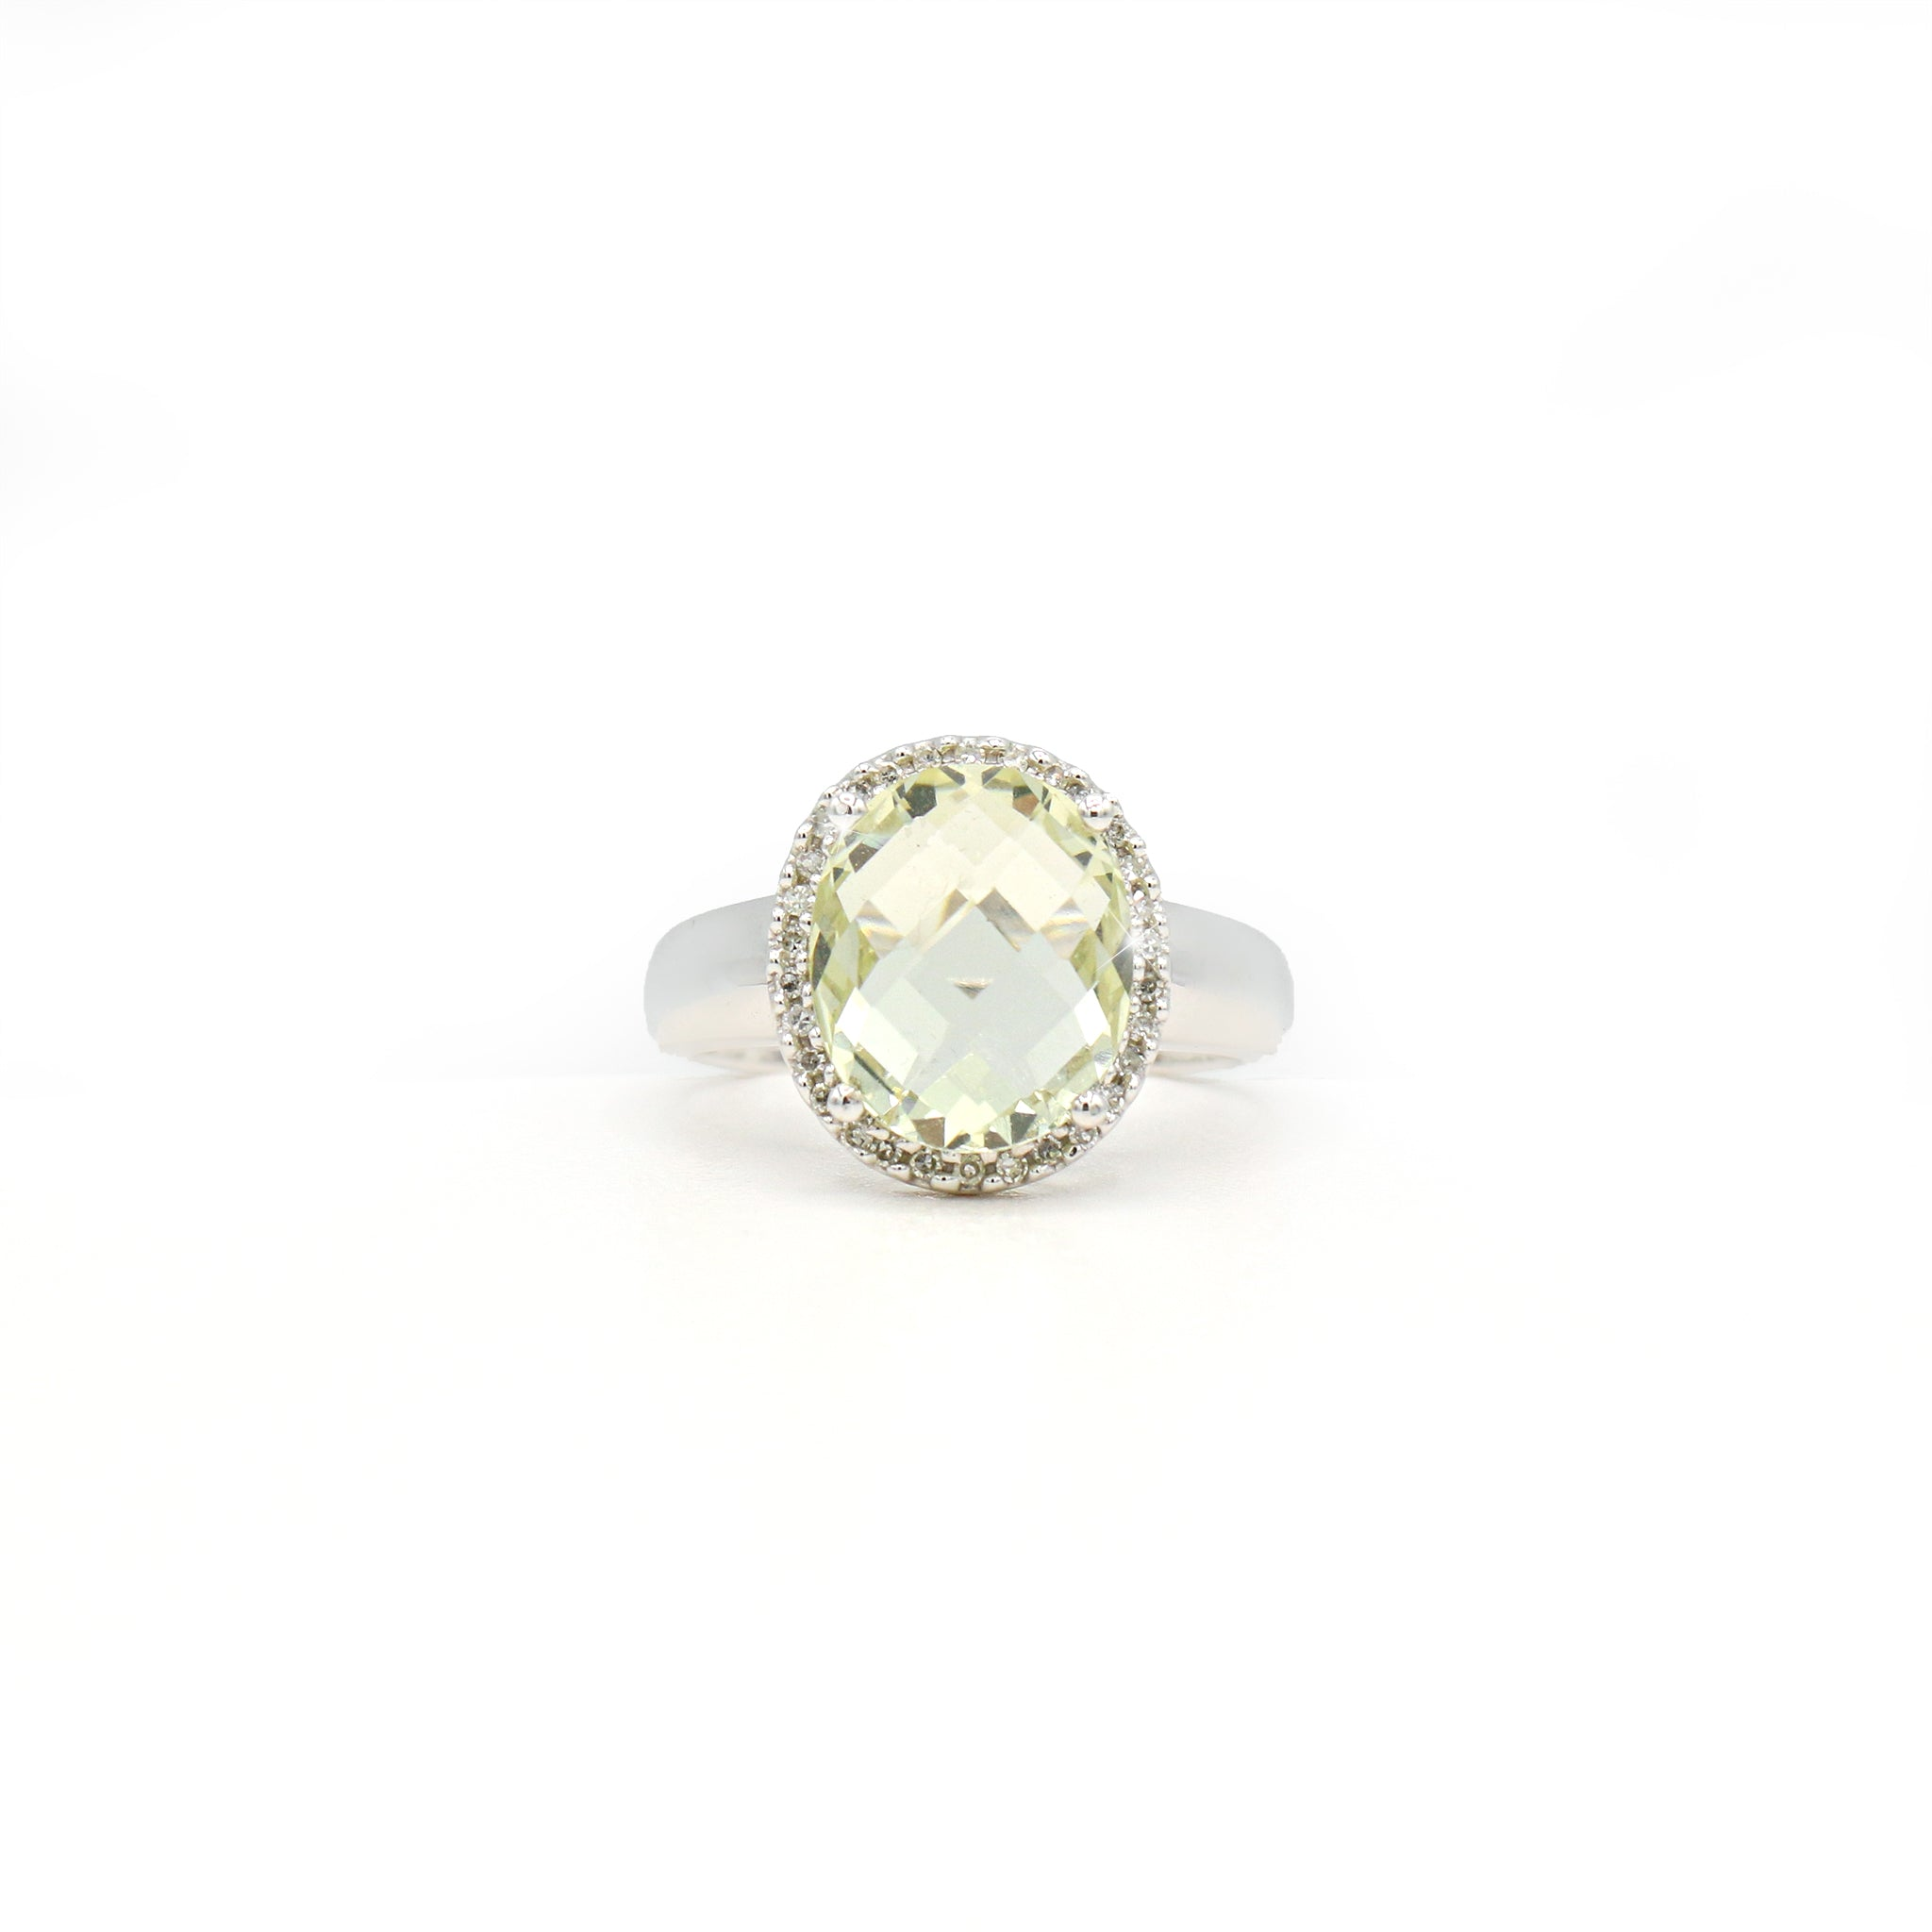 Enticing 14K White Gold Oval Lemon Quartz Diamond Ring (0.13ct Carat Diamond Weight)